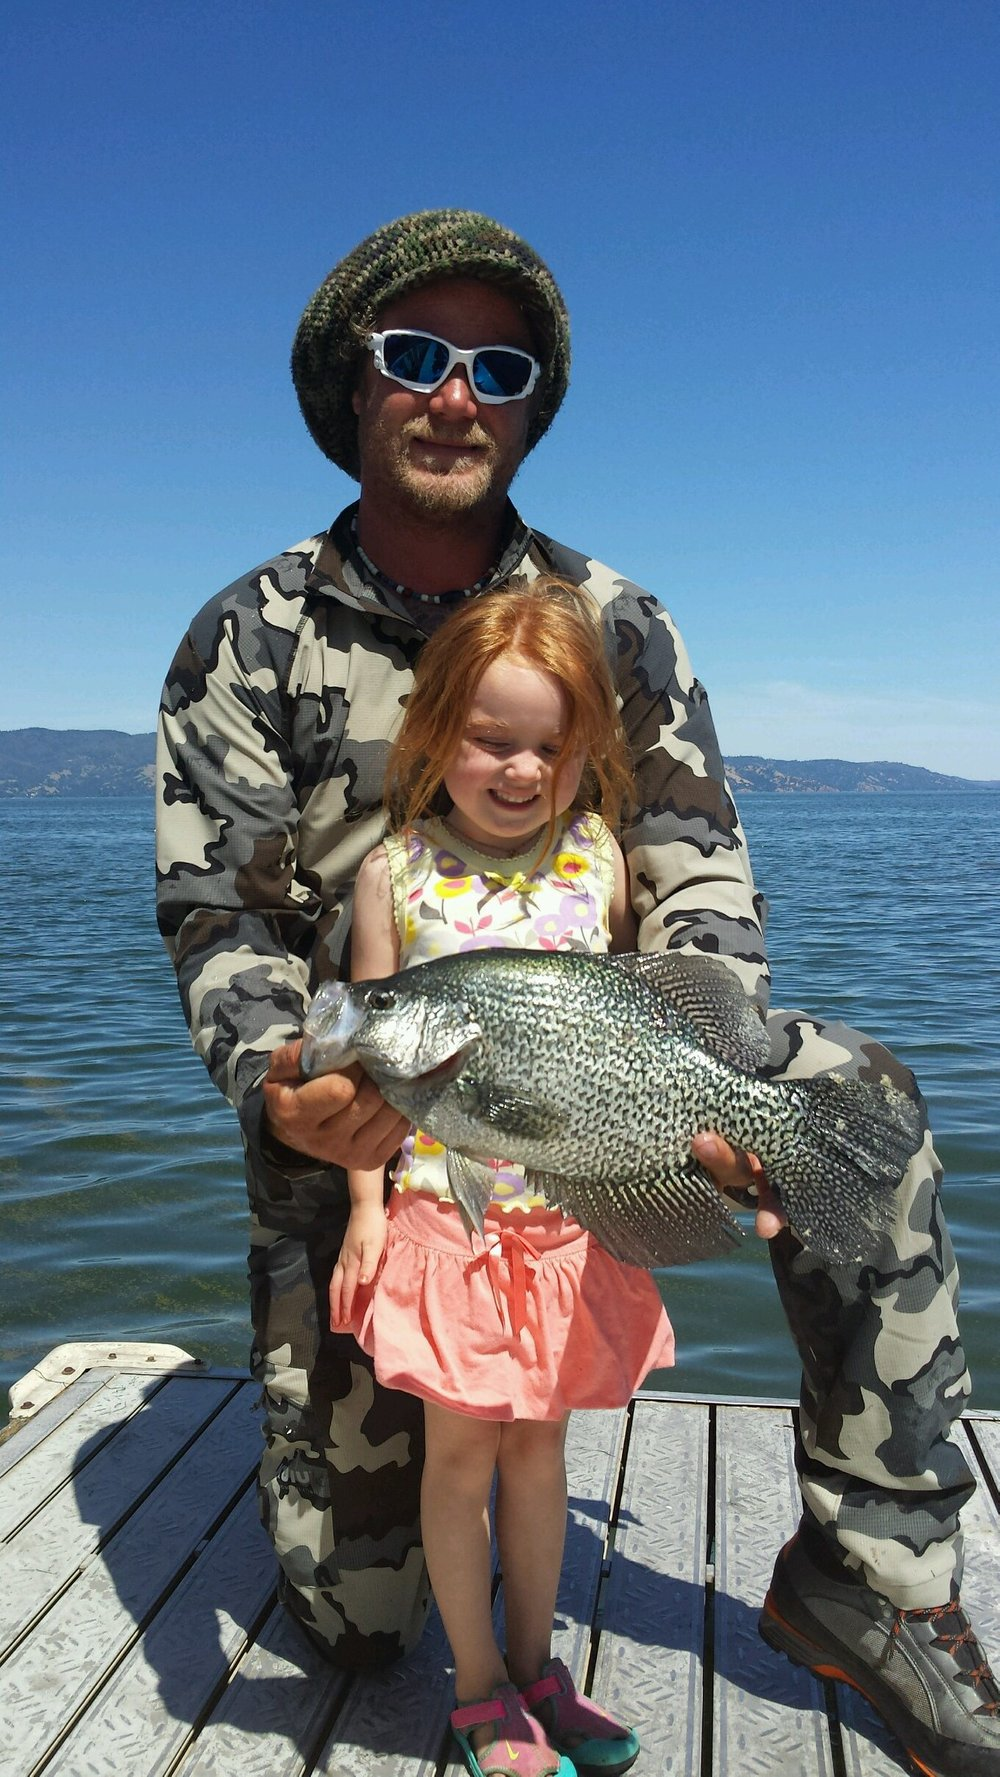 "Nate and Daughter ""Baby G"" with a beautiful Clearlake Crappie.  Mike's Fishing Guide Service for Northern California salmon fishing guided adventures, and Sacramento River Fishing Guides. Targeting Sacramento River Salmon, Sacramento River Striped Bass, White Sturgeon on the Sacramento River, American Shad And Rainbow Trout, The Best Sacramento River Fishing Guide and Sacramento River Salmon and Striped Bass Fishing Guide On The Sacramento River. Sacramento River Fishing is our specialty."